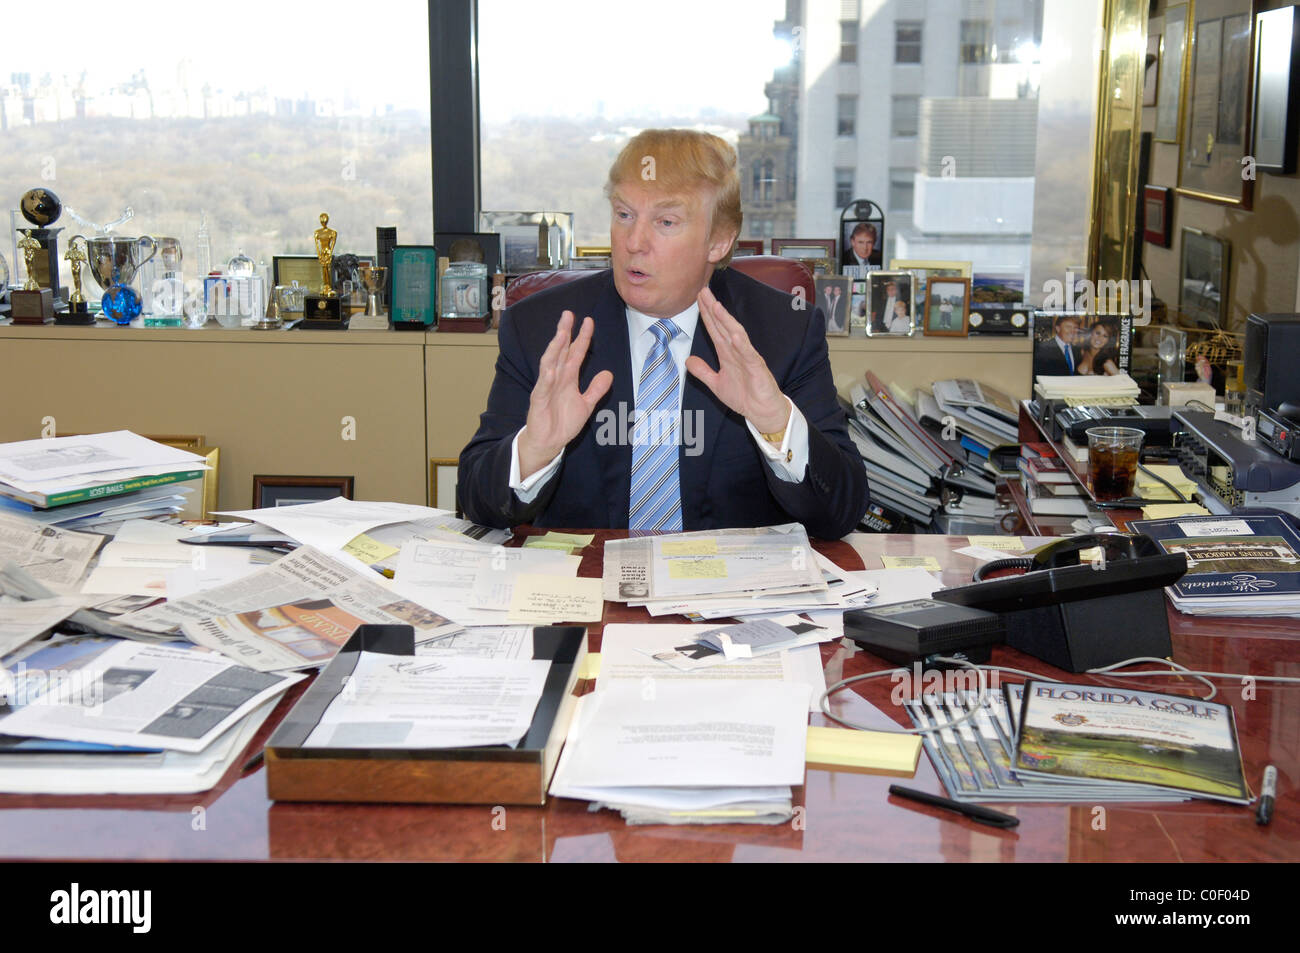 entrepreneur Donald Trump at his desk in his  Manhattan office - Stock Image